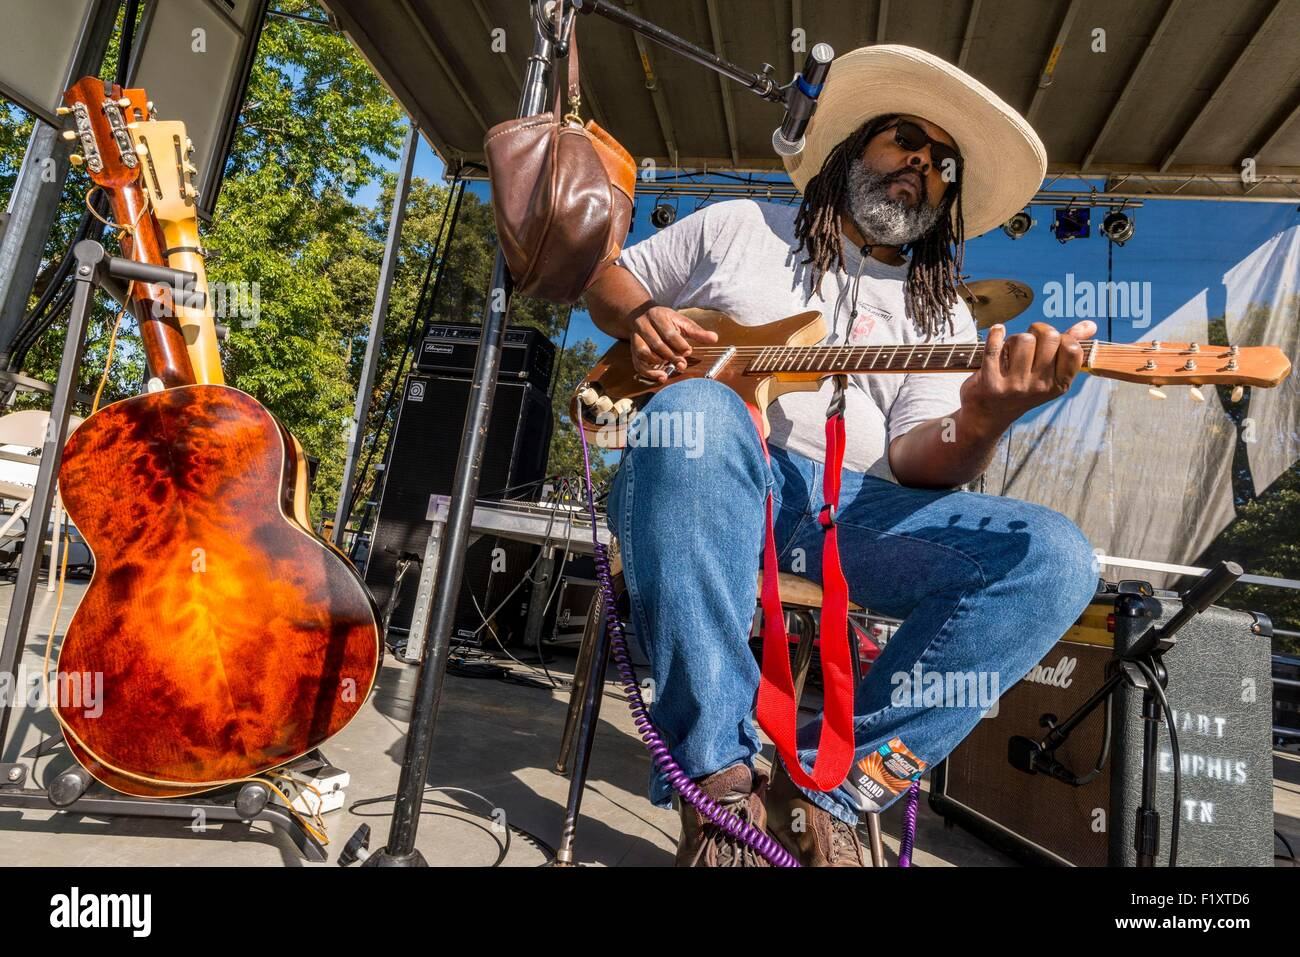 United States, Mississippi, Greenville, Mighty Mississippi Music festival, bluesman Alvin Youngblood Hart - Stock Image